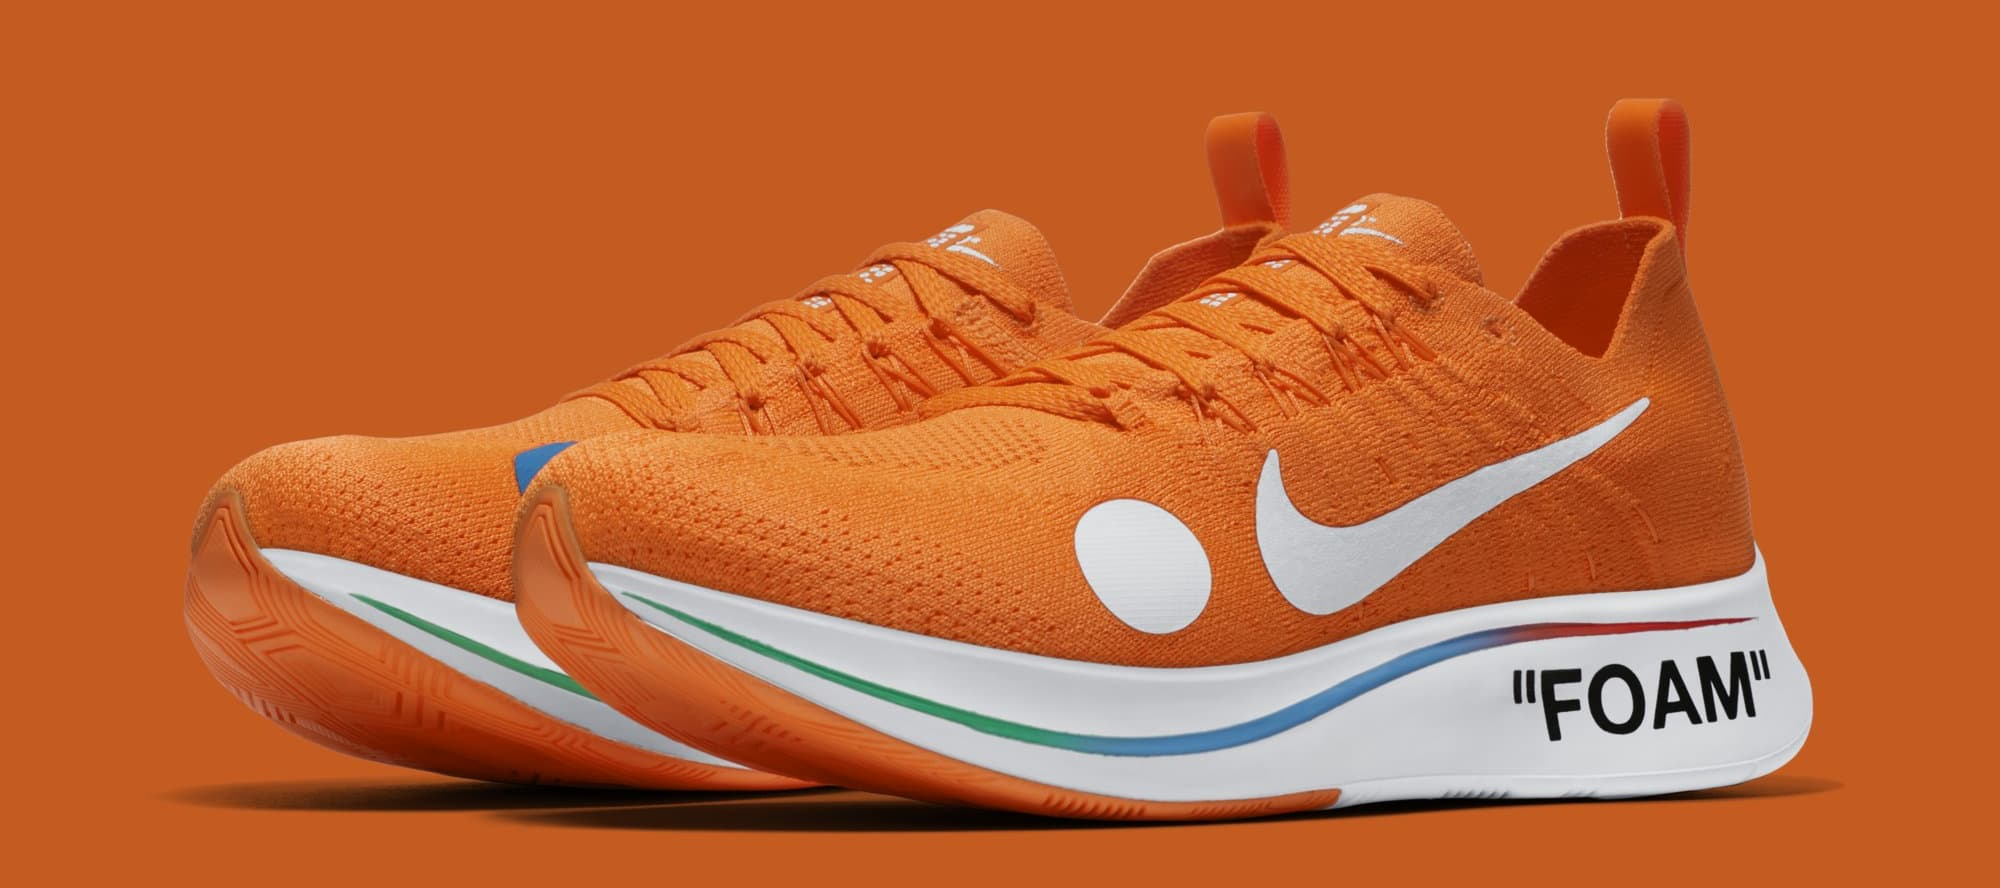 Off-White x Nike Zoom Fly Mercurial Flyknit 'Total Orange' AO2115-800 (Pair)